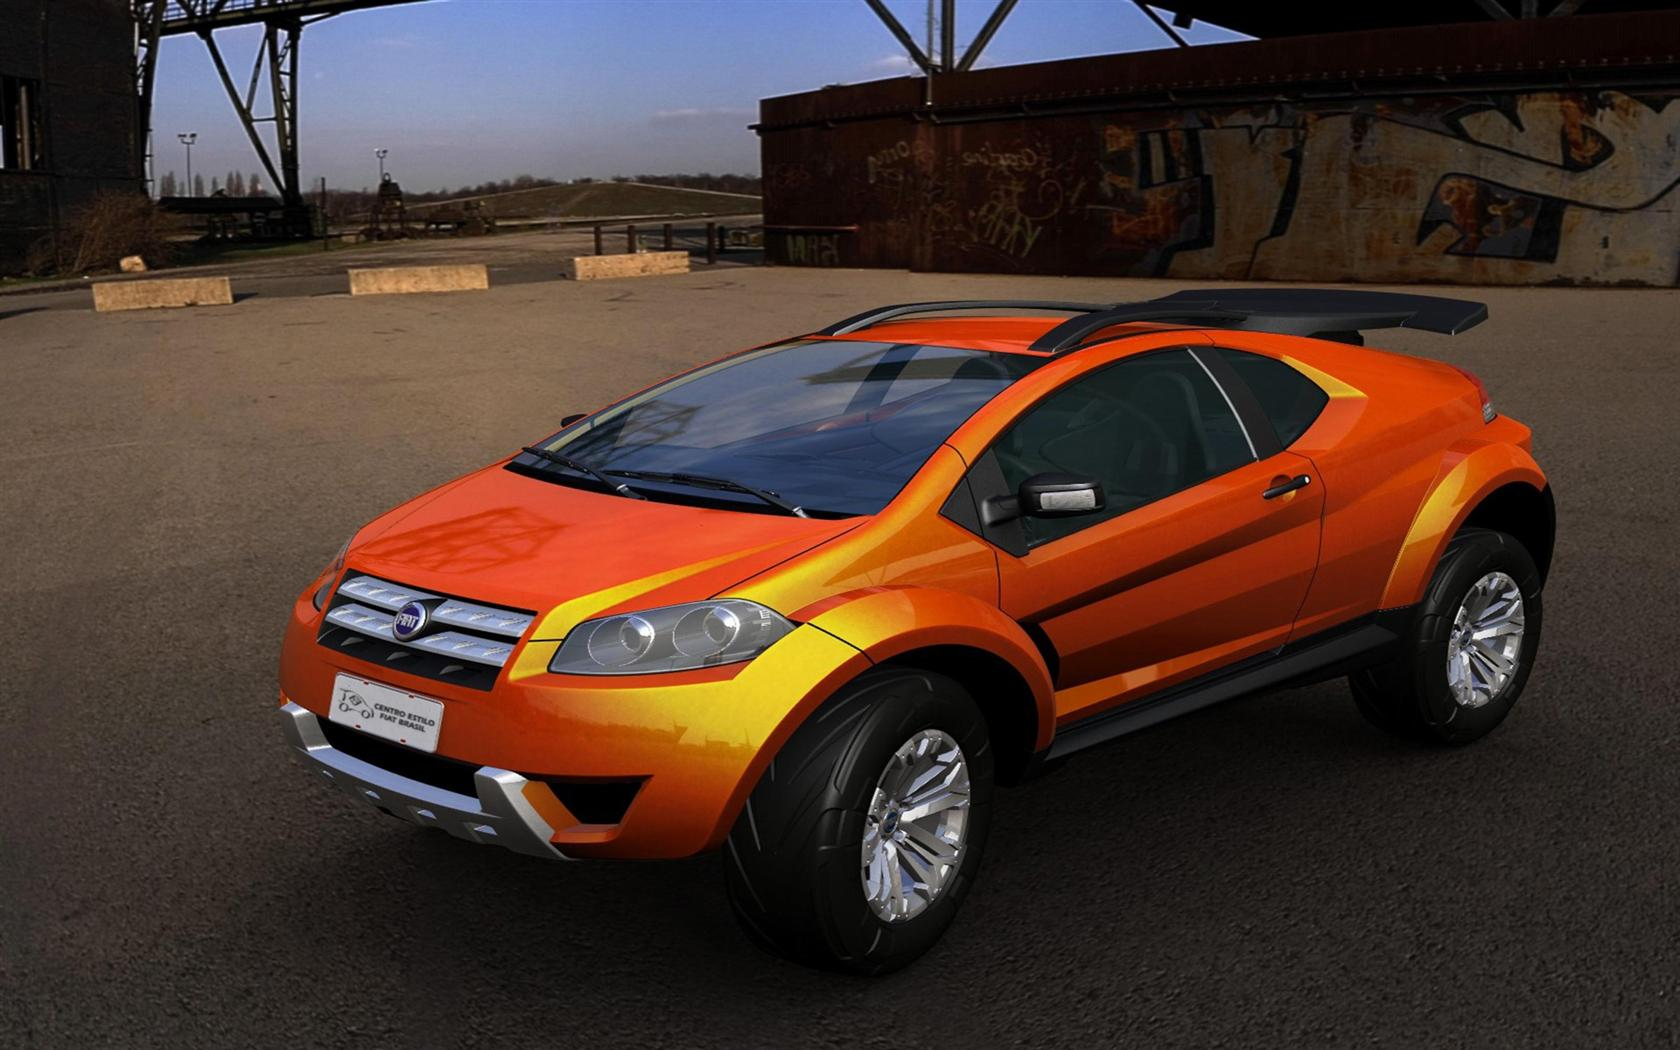 2006 fiat fcc adventure concept images photo 2006 fiat